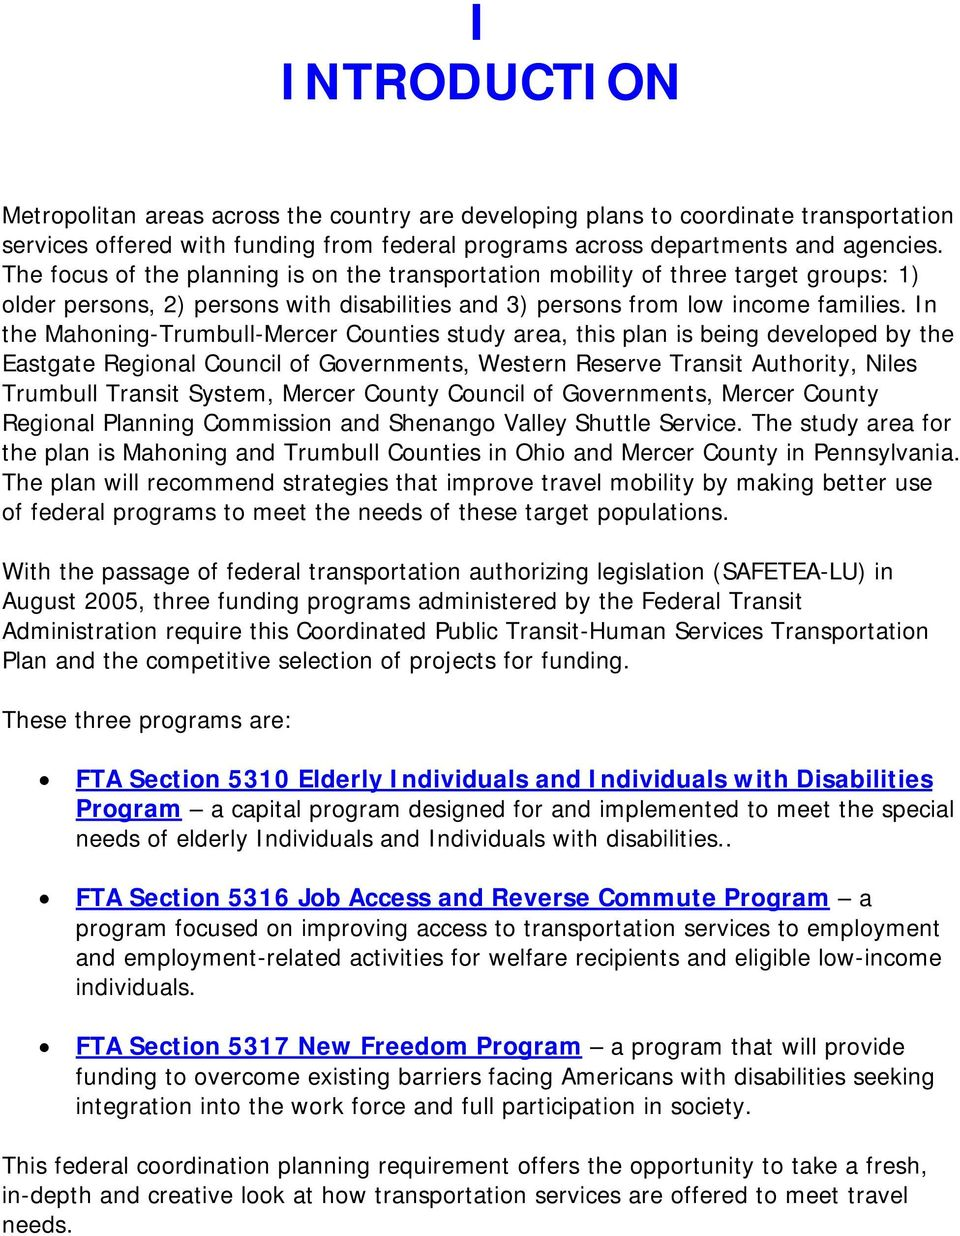 In the Mahoning-Trumbull-Mercer Counties study area, this plan is being developed by the Eastgate Regional Council of Governments, Western Reserve Transit Authority, Niles Trumbull Transit System,